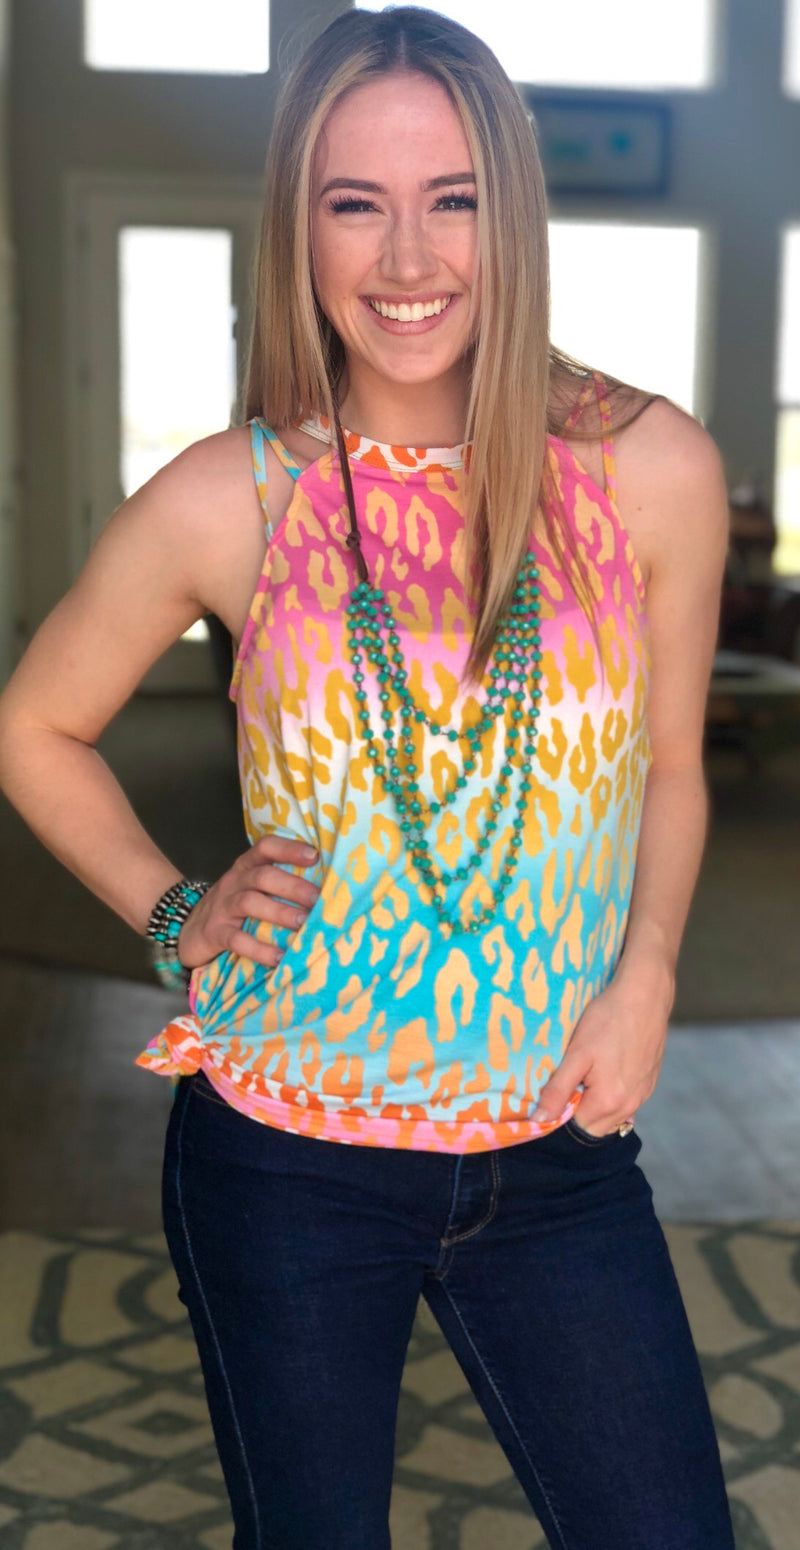 The Neon Cheetah Strappy Tank